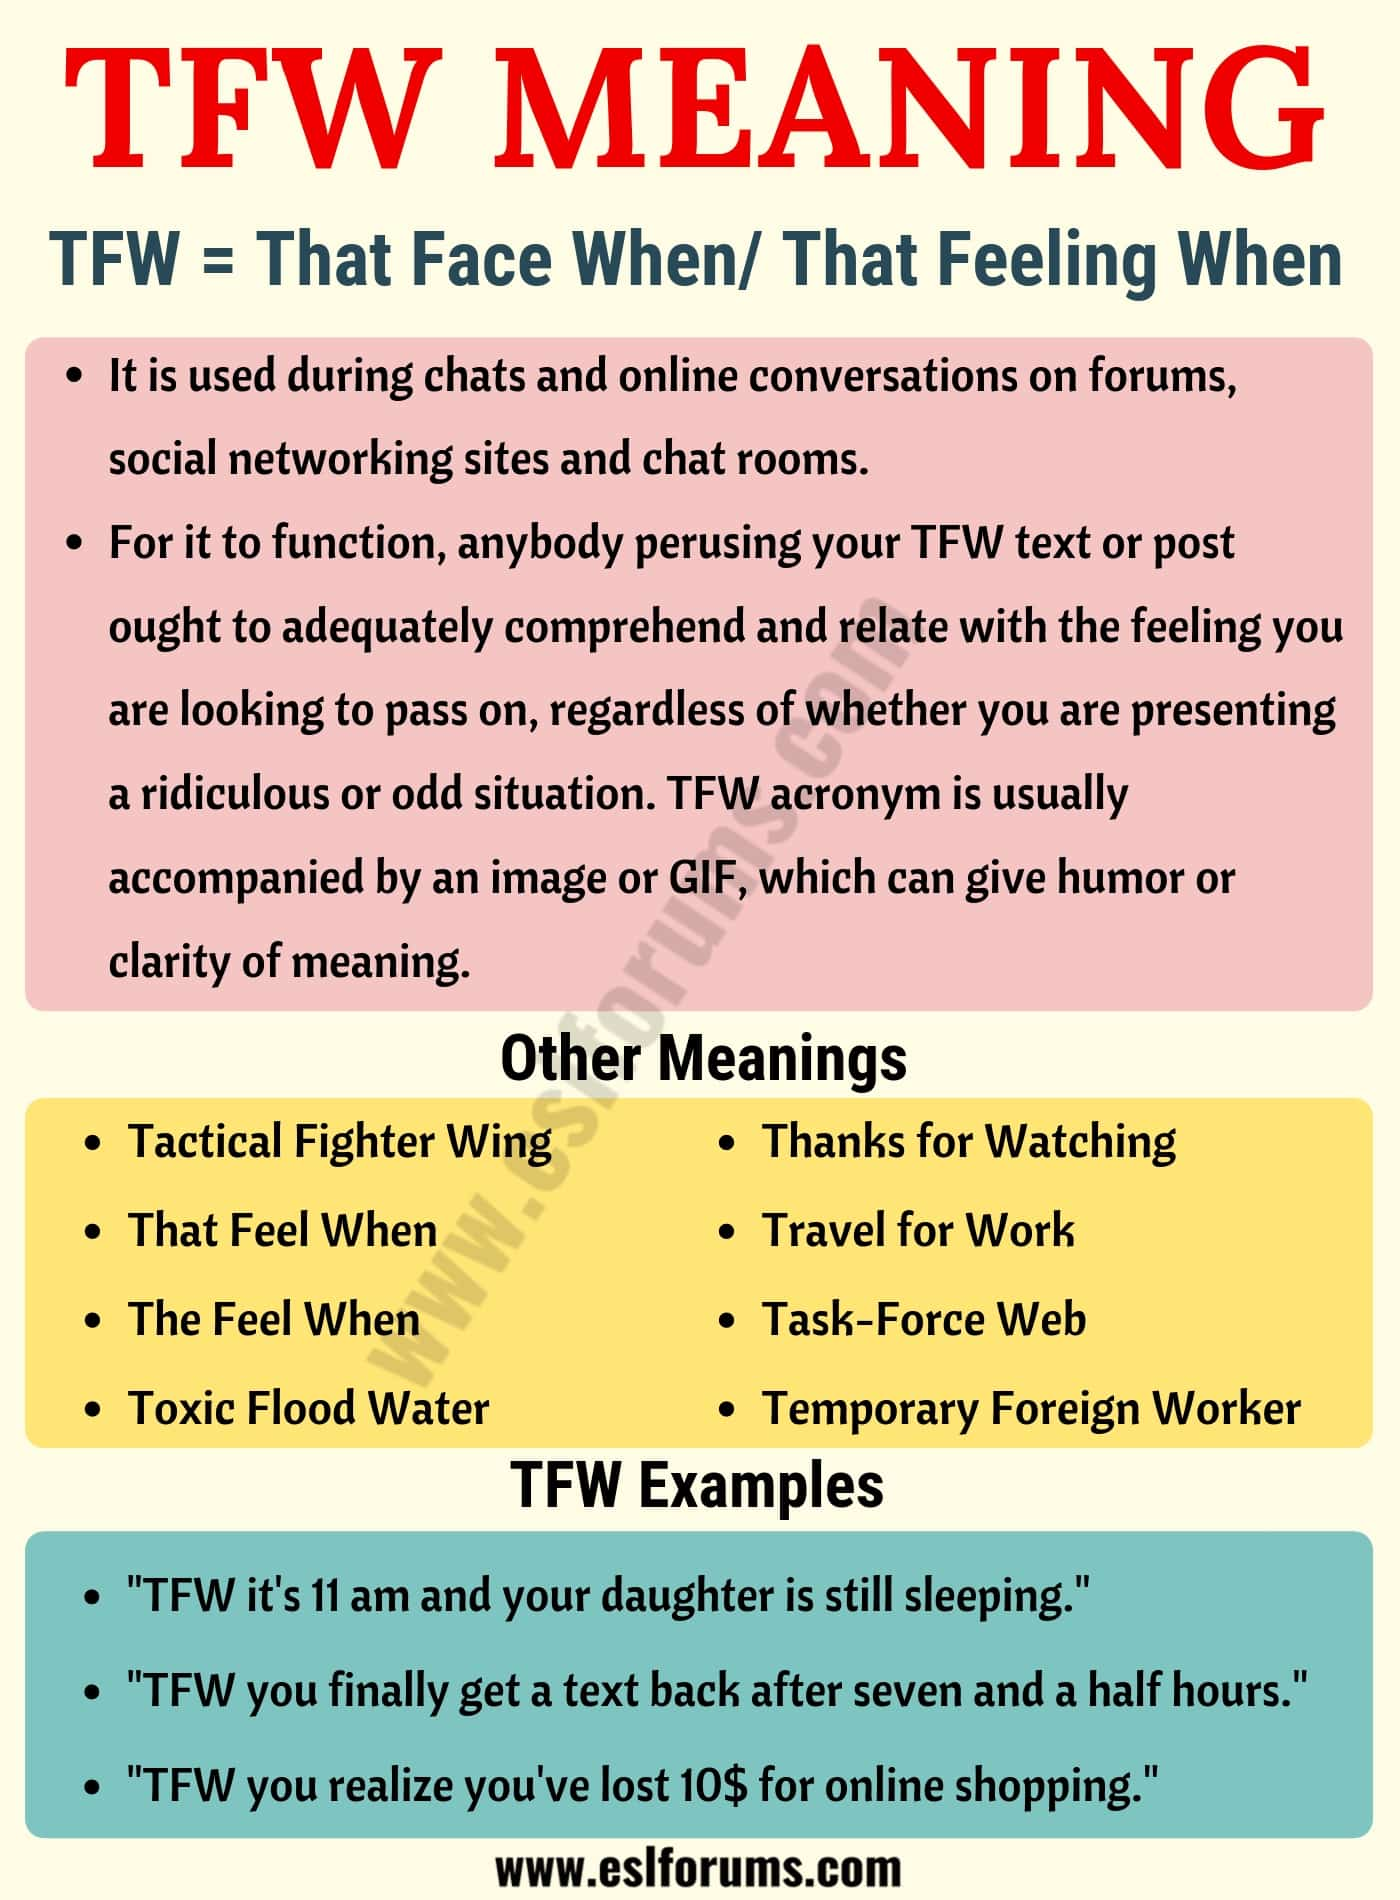 TFW Meaning: What Does TFW Mean? Useful Examples